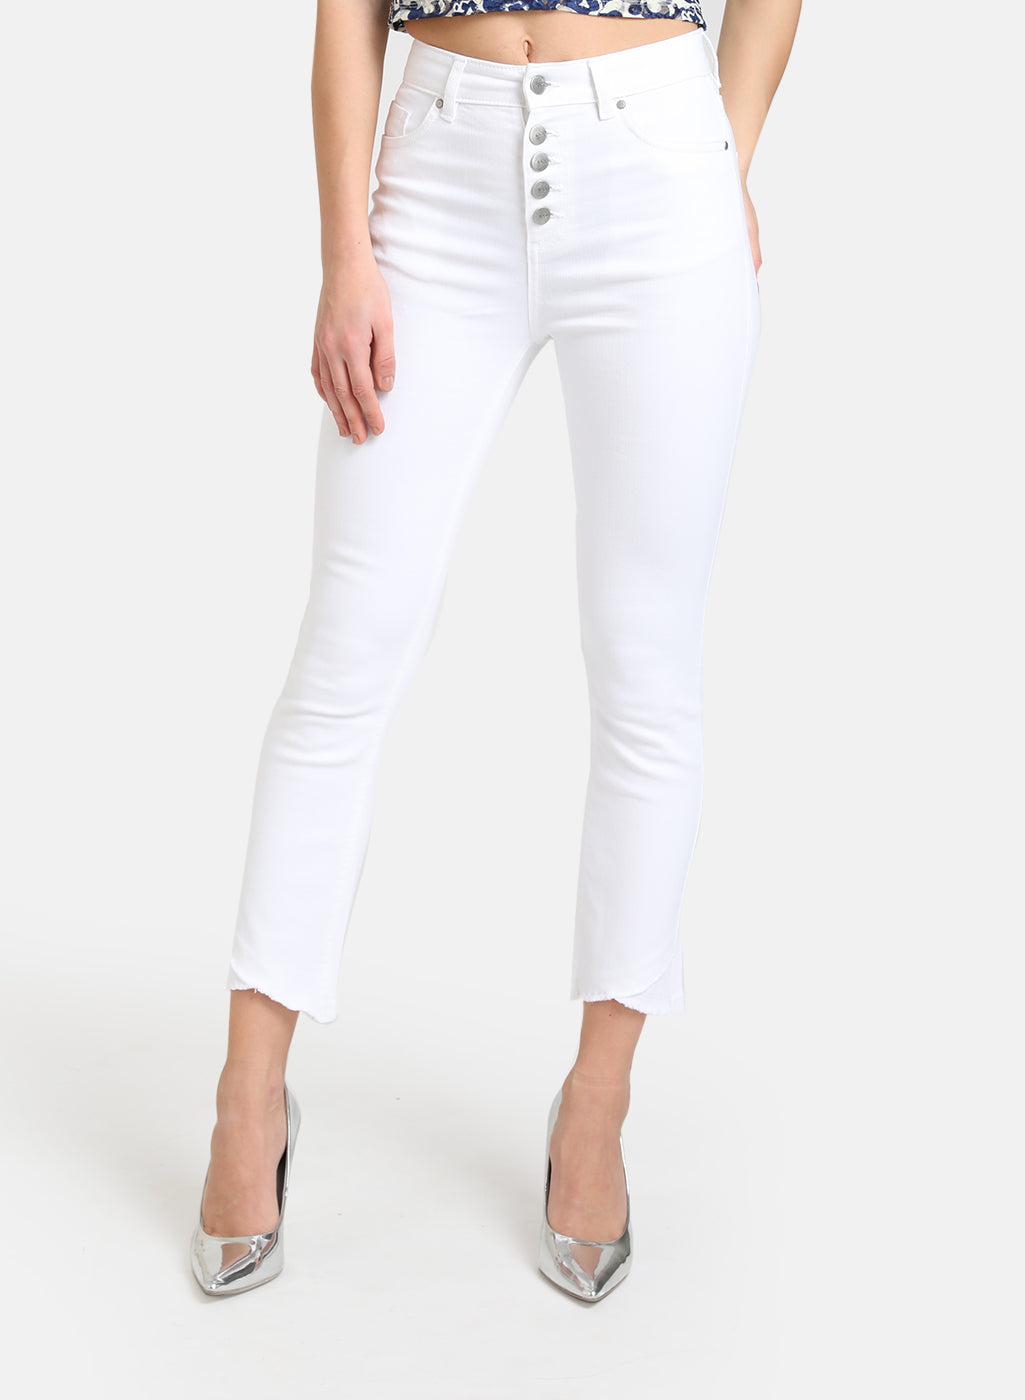 BUTTON DETAILED JEANS  WITH CROSS FRINGE HEM